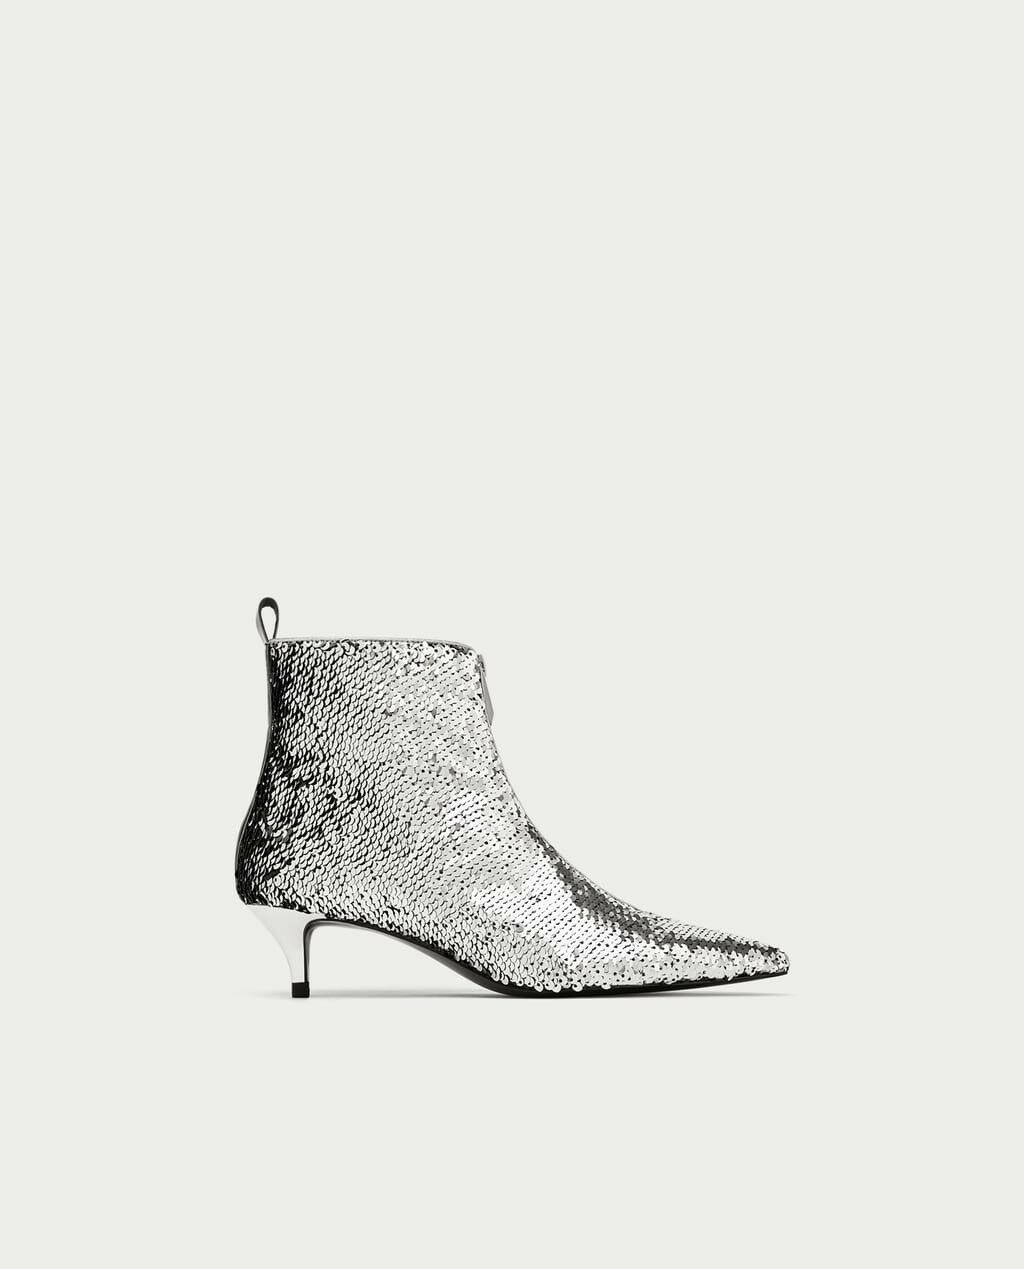 RARE Zara New AW17 Sequinned High Heel Ankle Boots Size 6.5 NWT